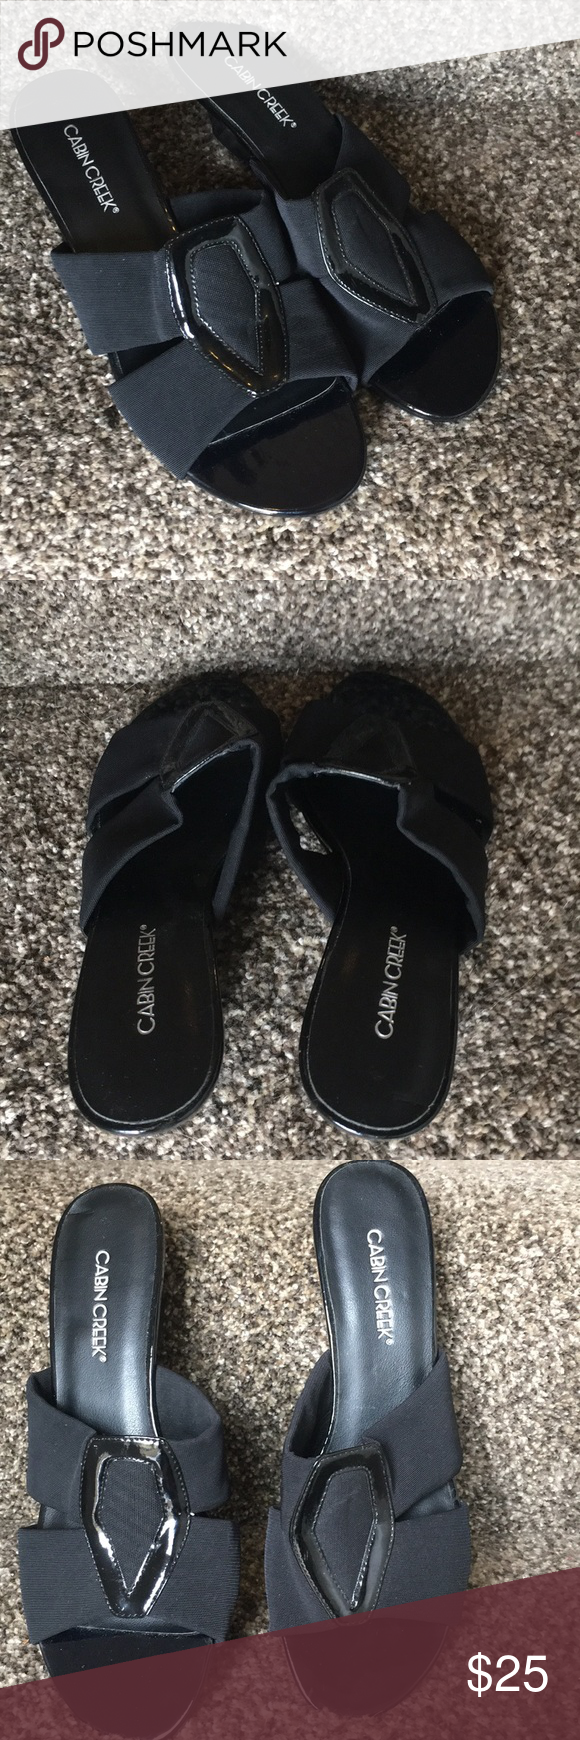 ca63a4bf368e NWOT Cabin Creek black sandals flats slip on 7 New without tags never worn  black cabin Creek sandals slip on size 7 Cabin creek Shoes Sandals